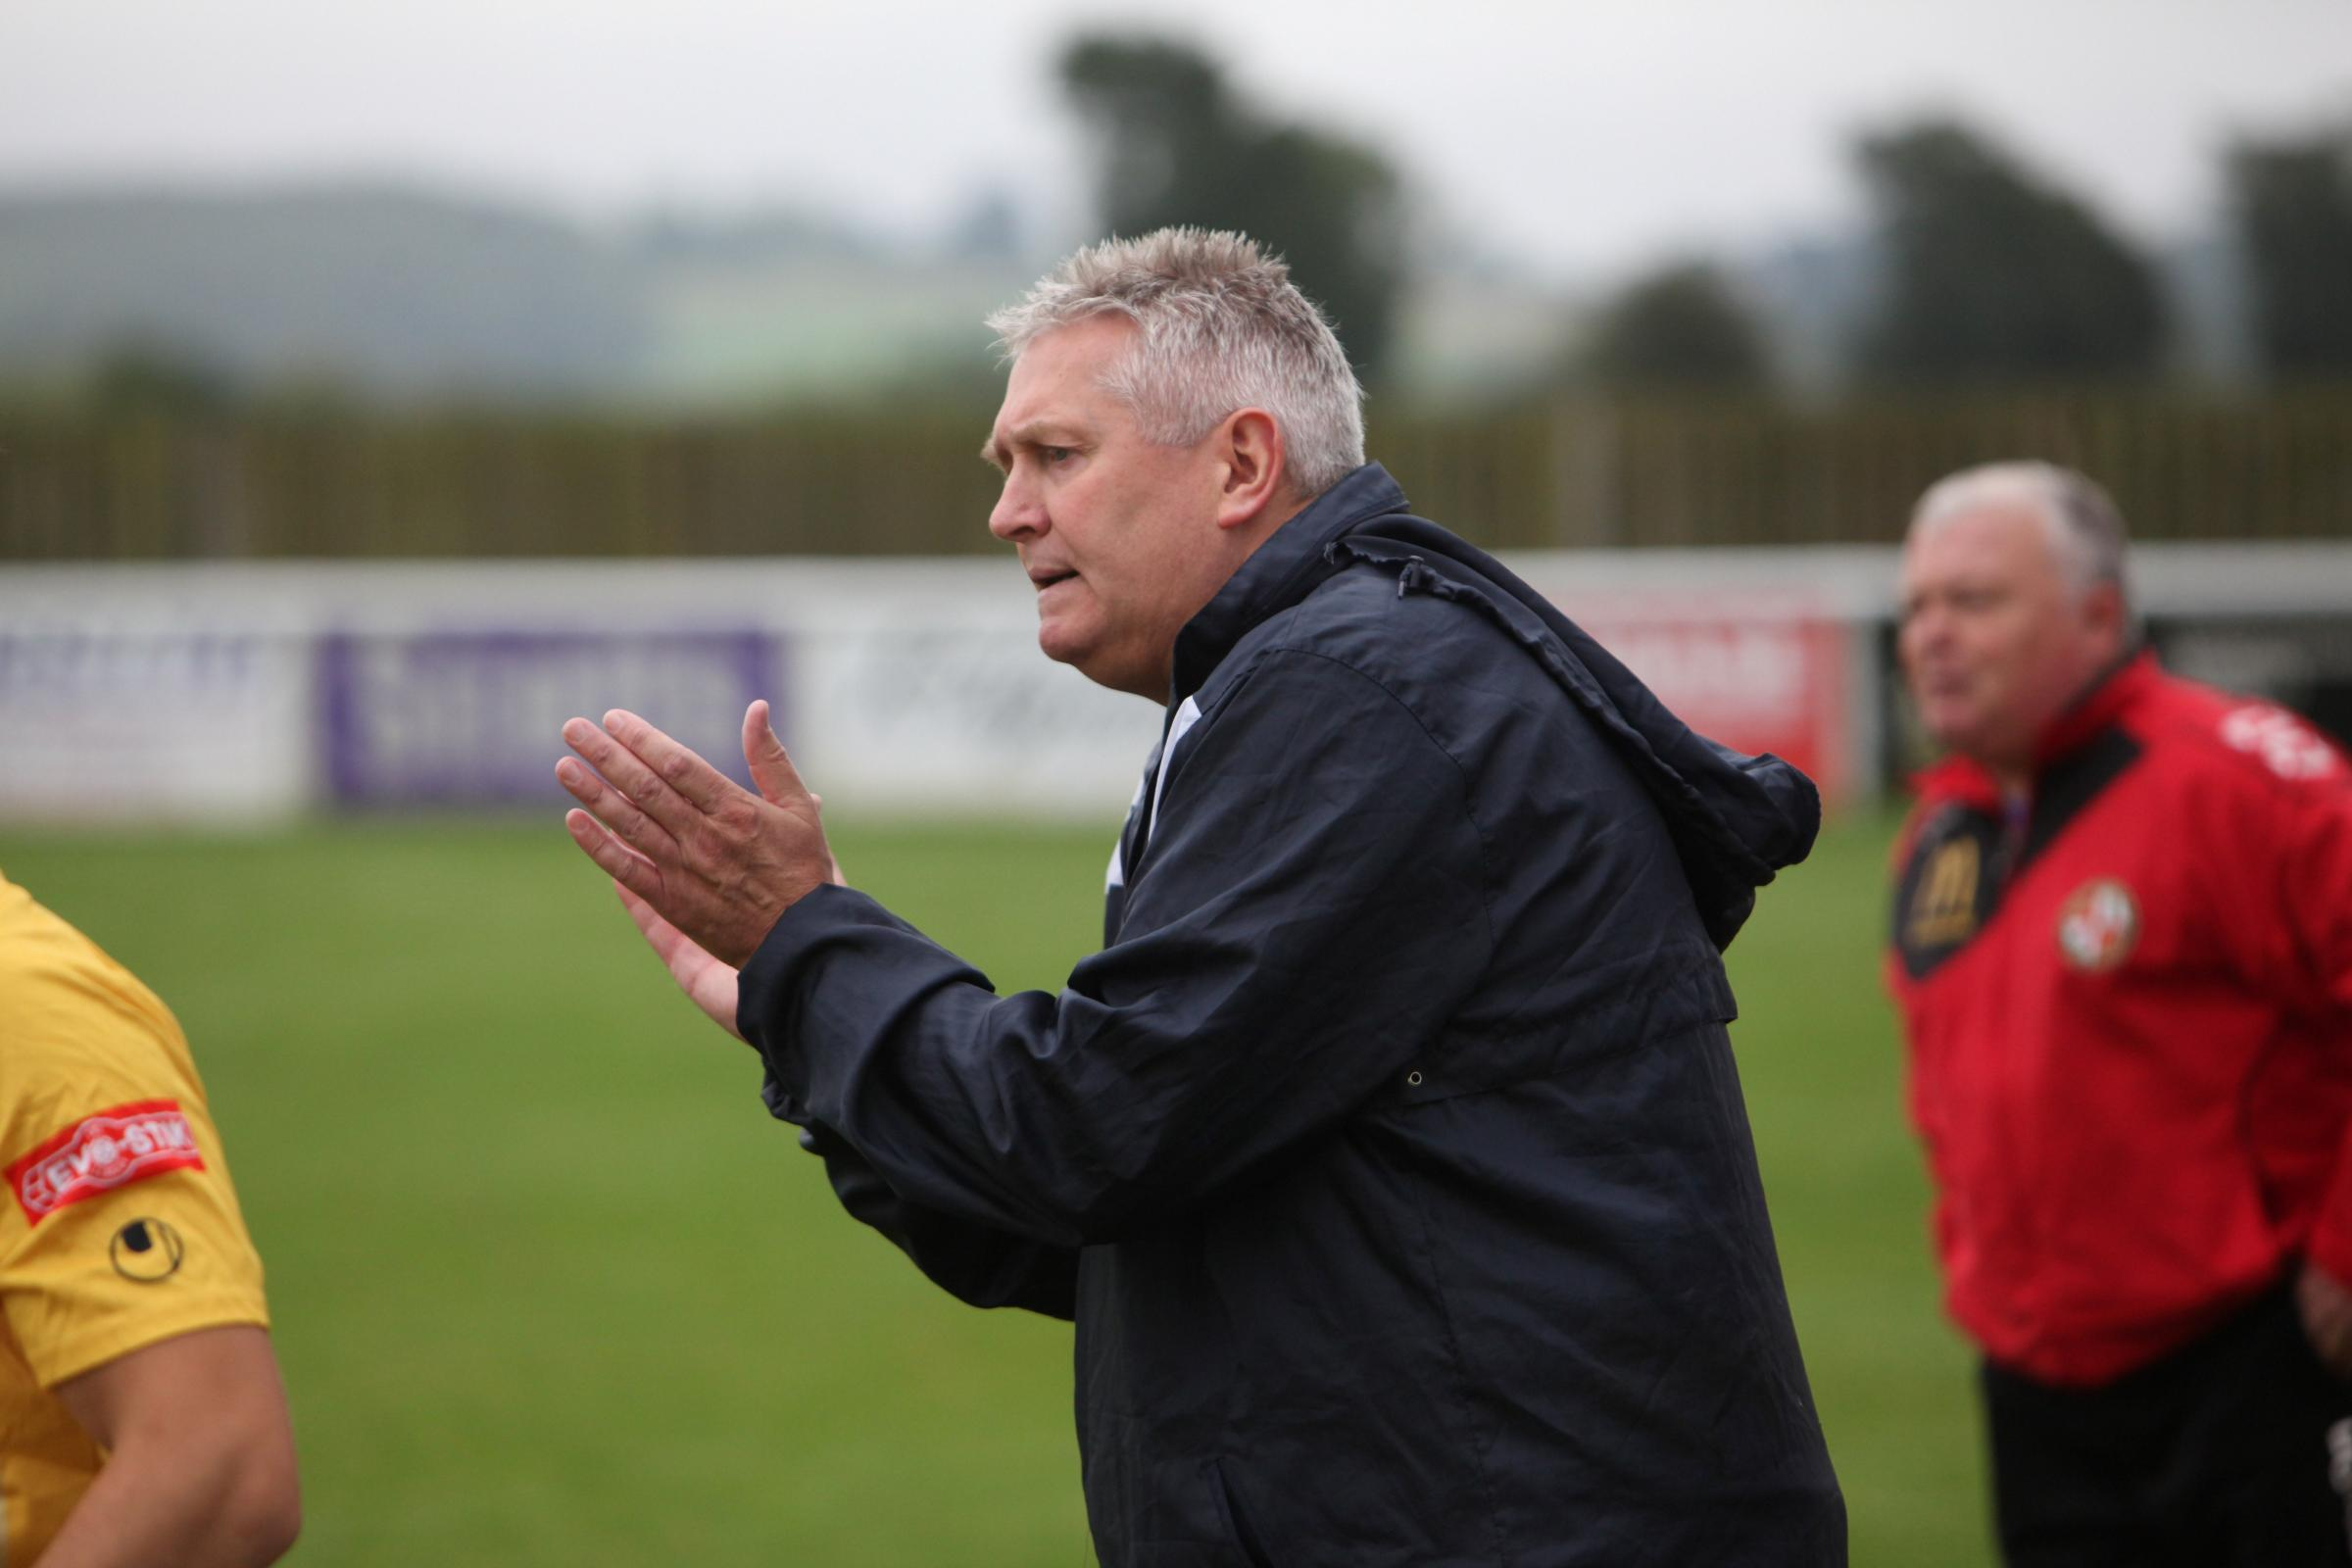 Evesham United manager Paul Collicutt. Picture: www.stuartpurfield.co.uk.